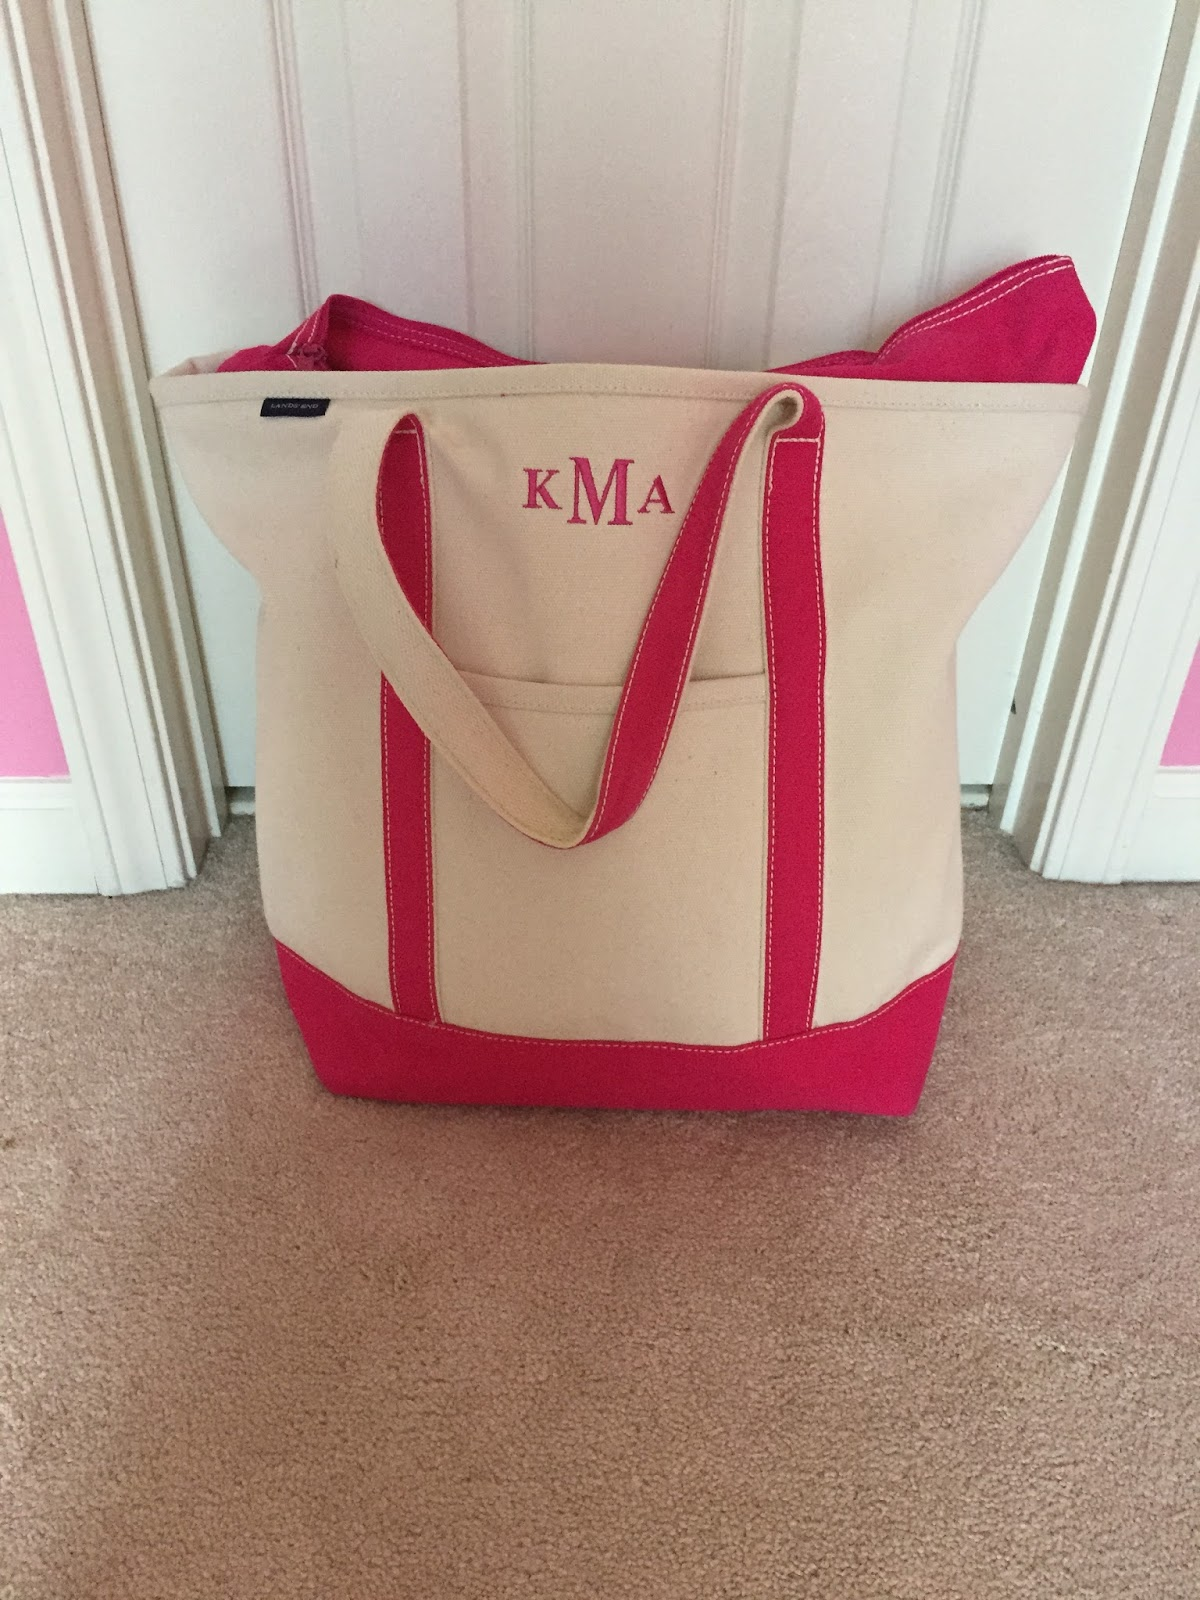 I Use The Land S End Large Tote With A Monogram And Love It Since Is So Can Hold Everything Also Has Lot Of Pockets Which